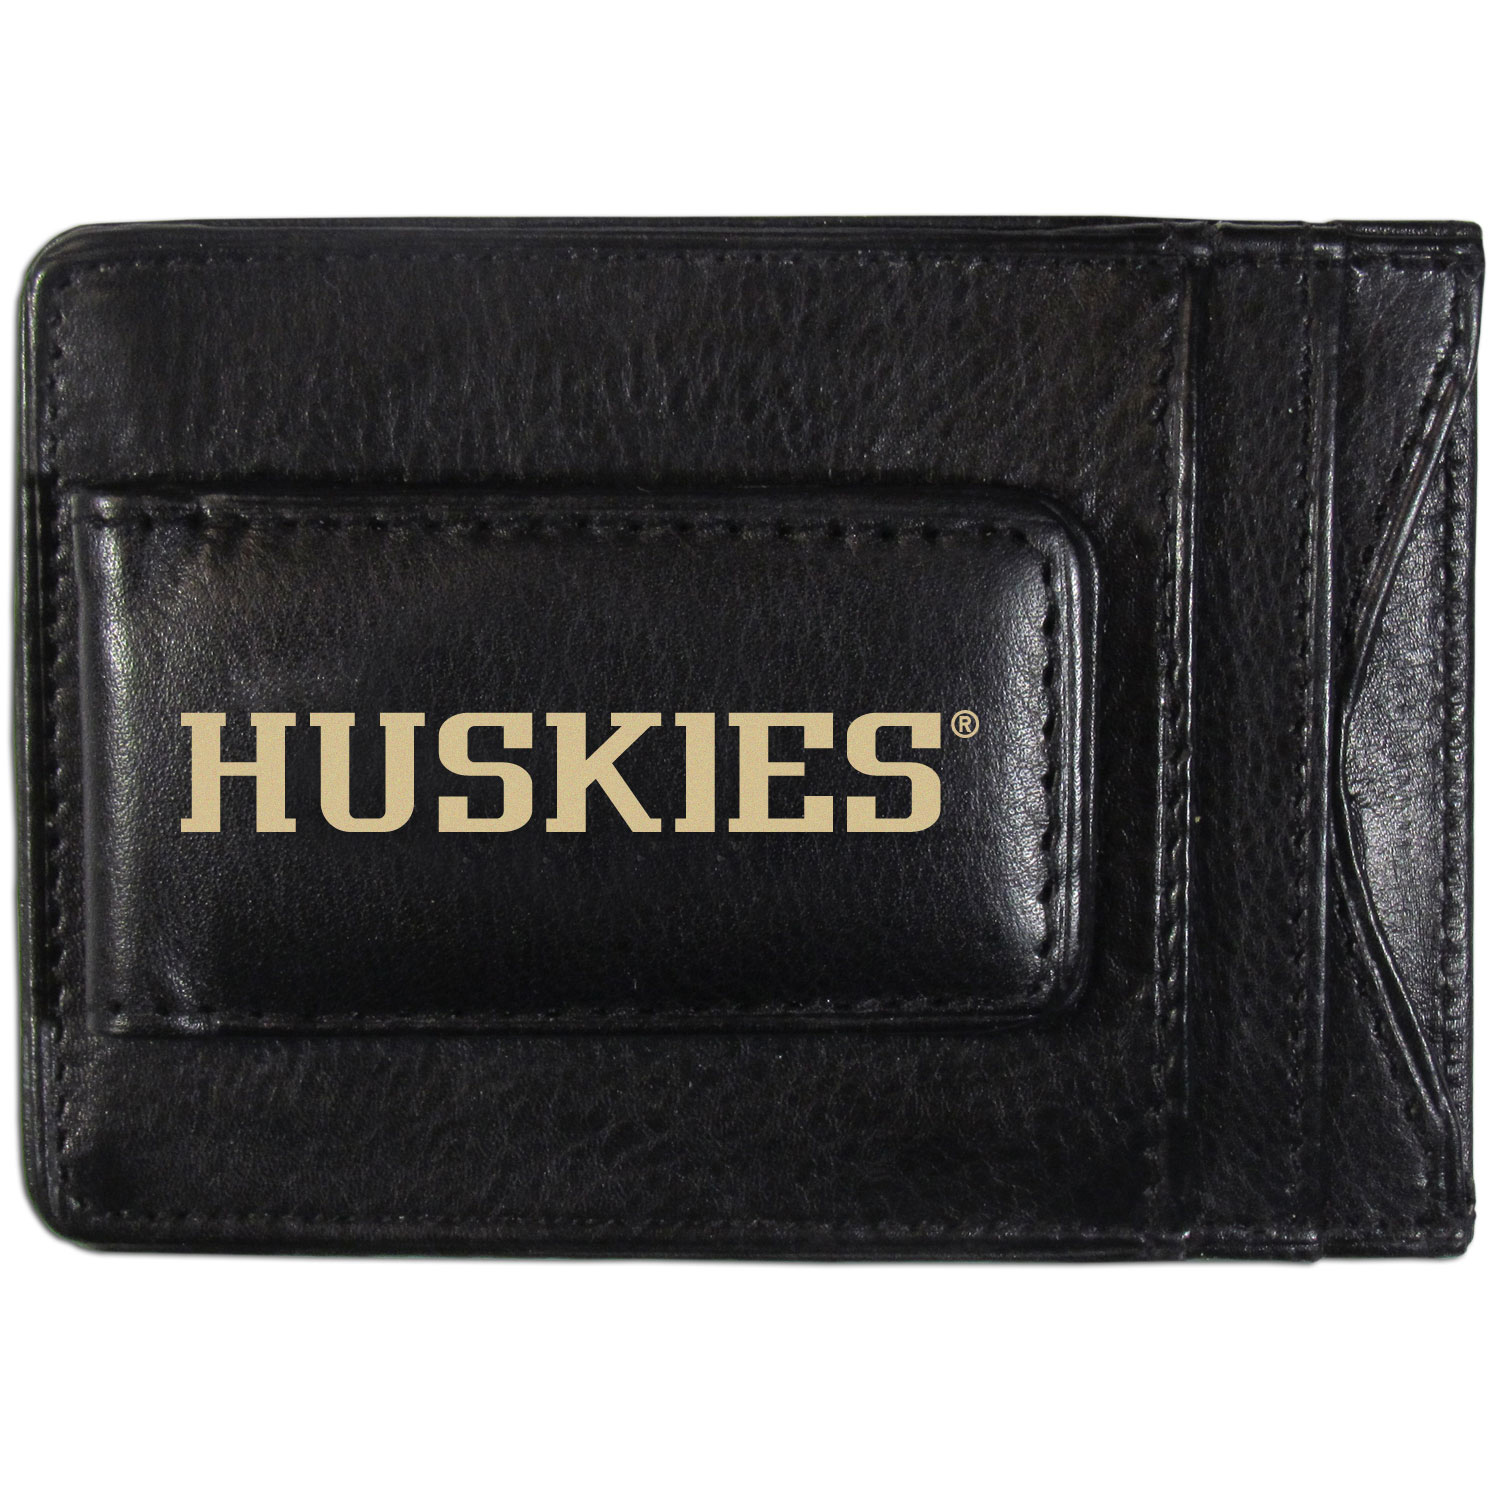 Washington Huskies Logo Leather Cash and Cardholder - This super slim leather wallet lets you have all the benefits of a money clip while keeping the organization of a wallet. On one side of this front pocket wallet there is a strong, magnetic money clip to keep your cash easily accessible and the?Washington Huskies team logo on the front. The versatile men's accessory is a perfect addition to your fan apparel.